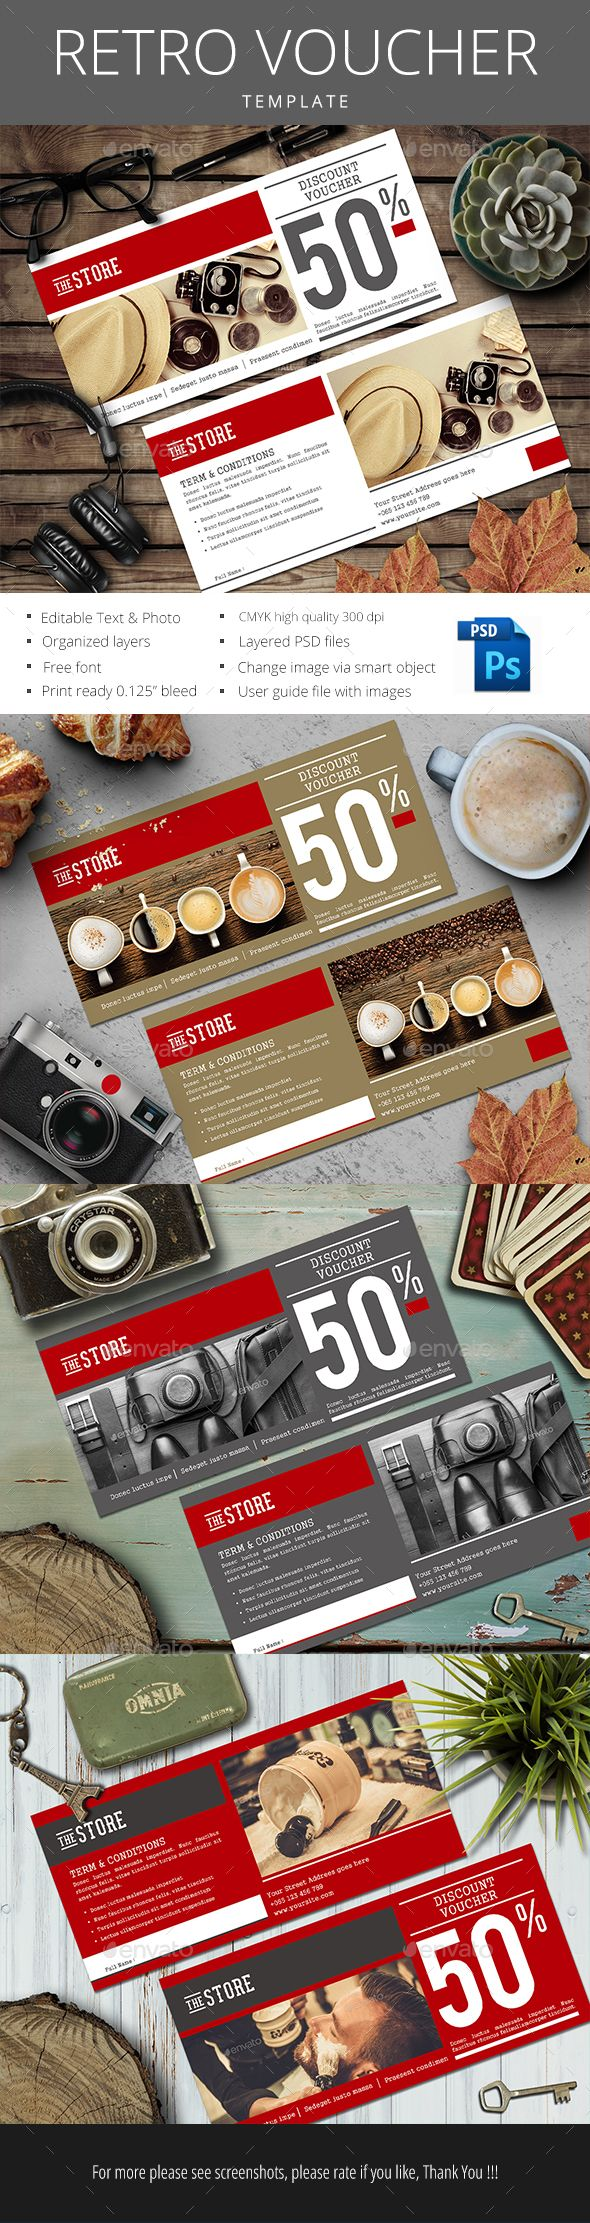 41 best Design images on Pinterest | Gift voucher design, Gift cards ...